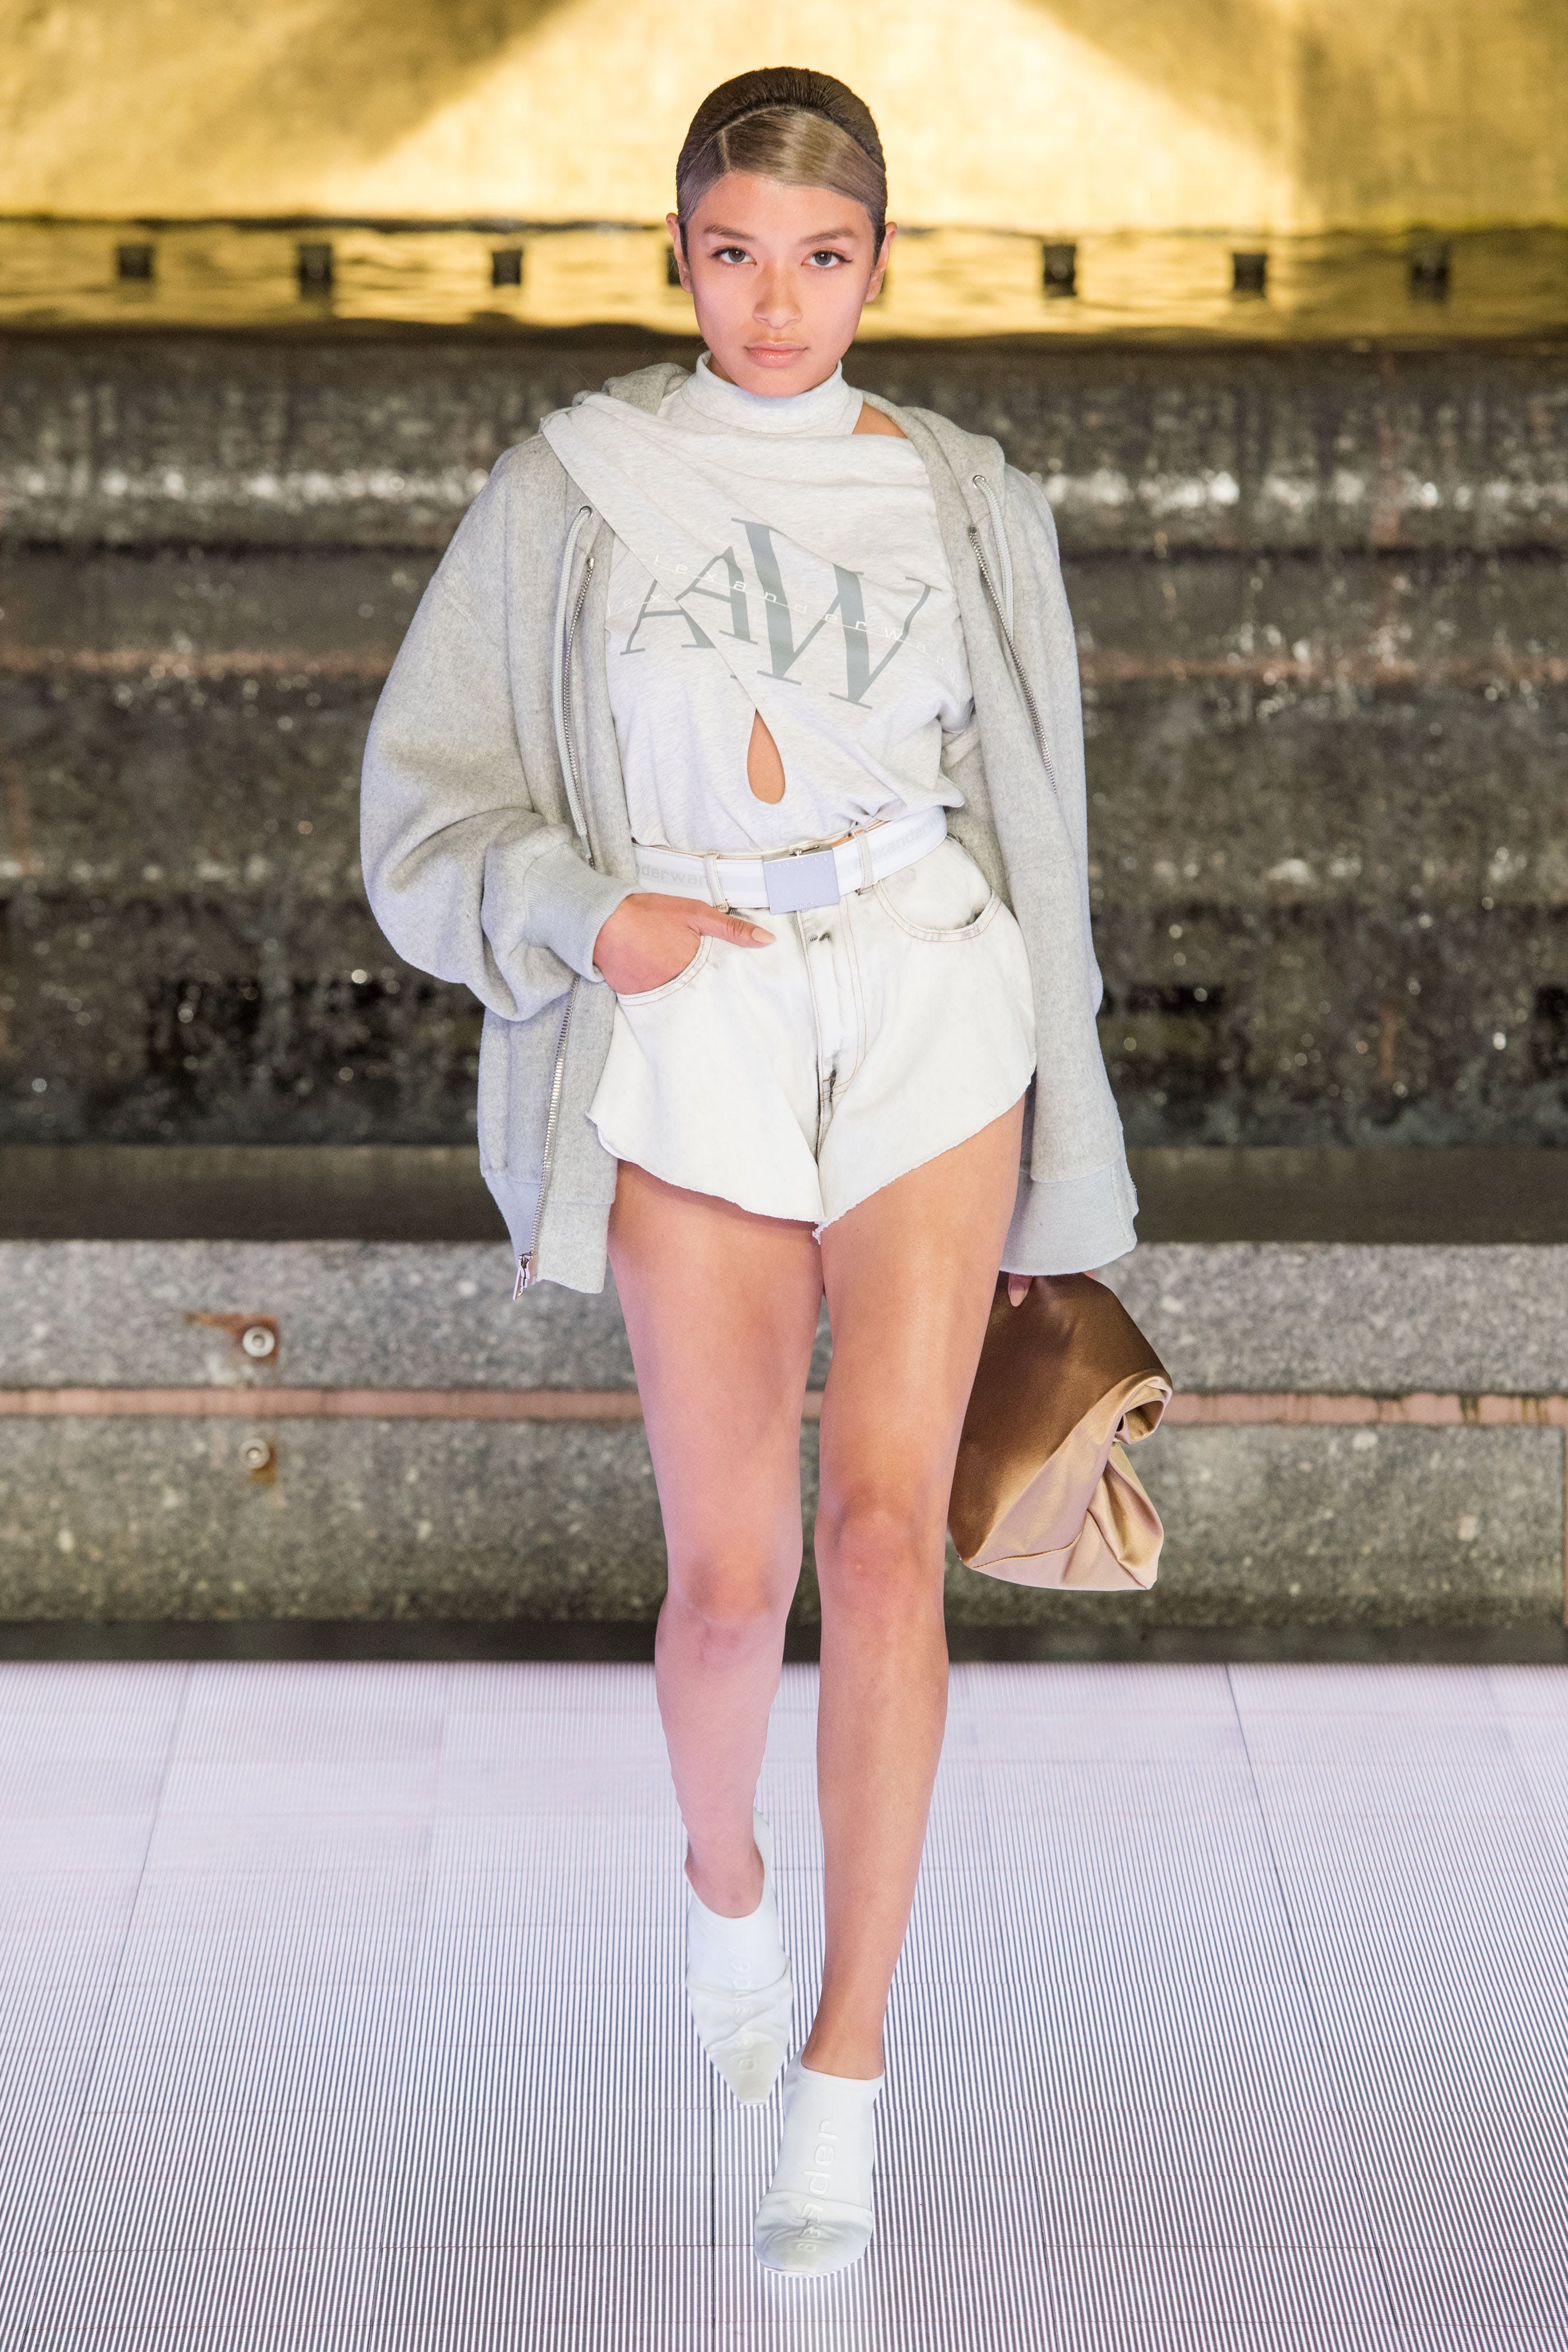 Alexander Wang Runway Oversized Zipup Hoodie in Light Grey Tie-Neck Logo Tee in White Bite Shorts in White Vanna Mule in White Spring 20 RTW